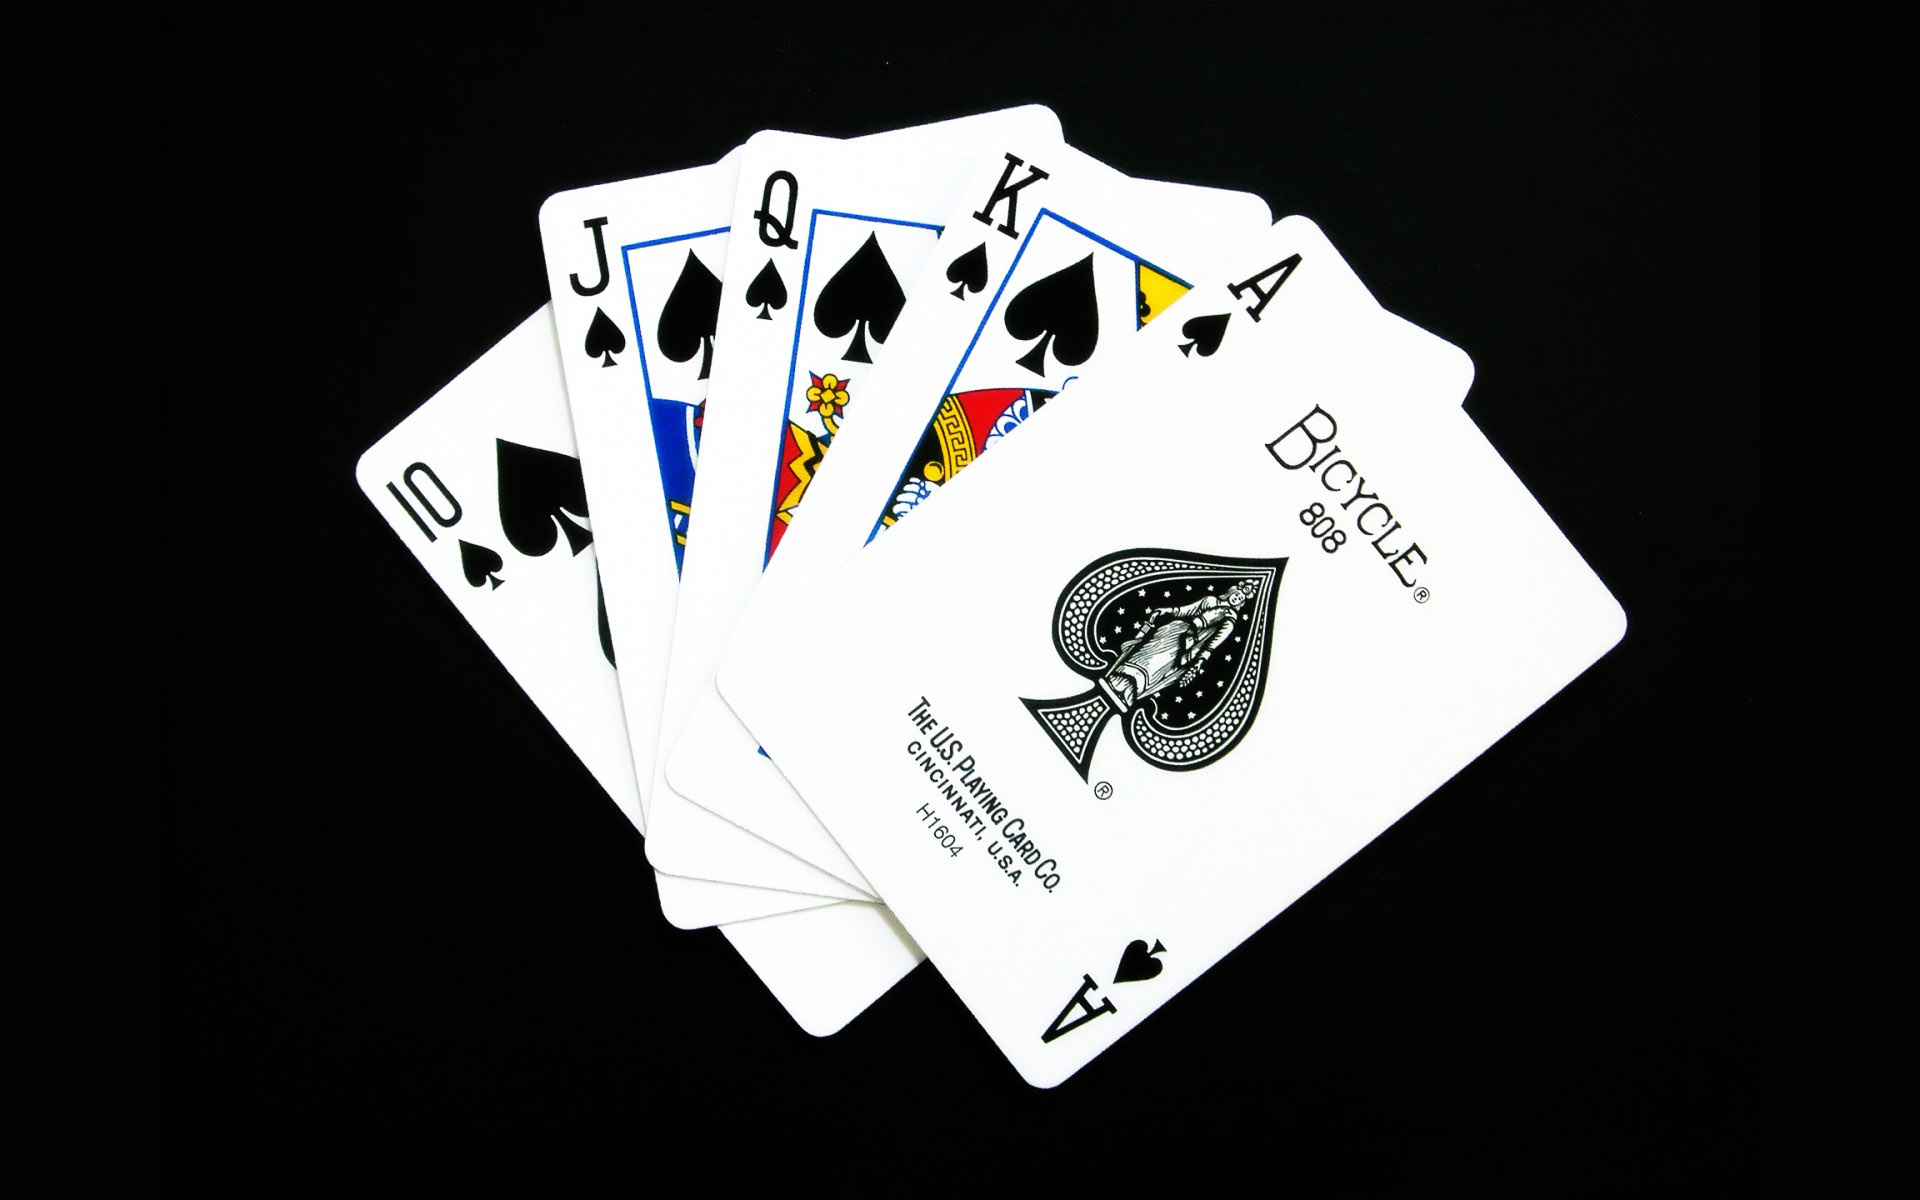 card images